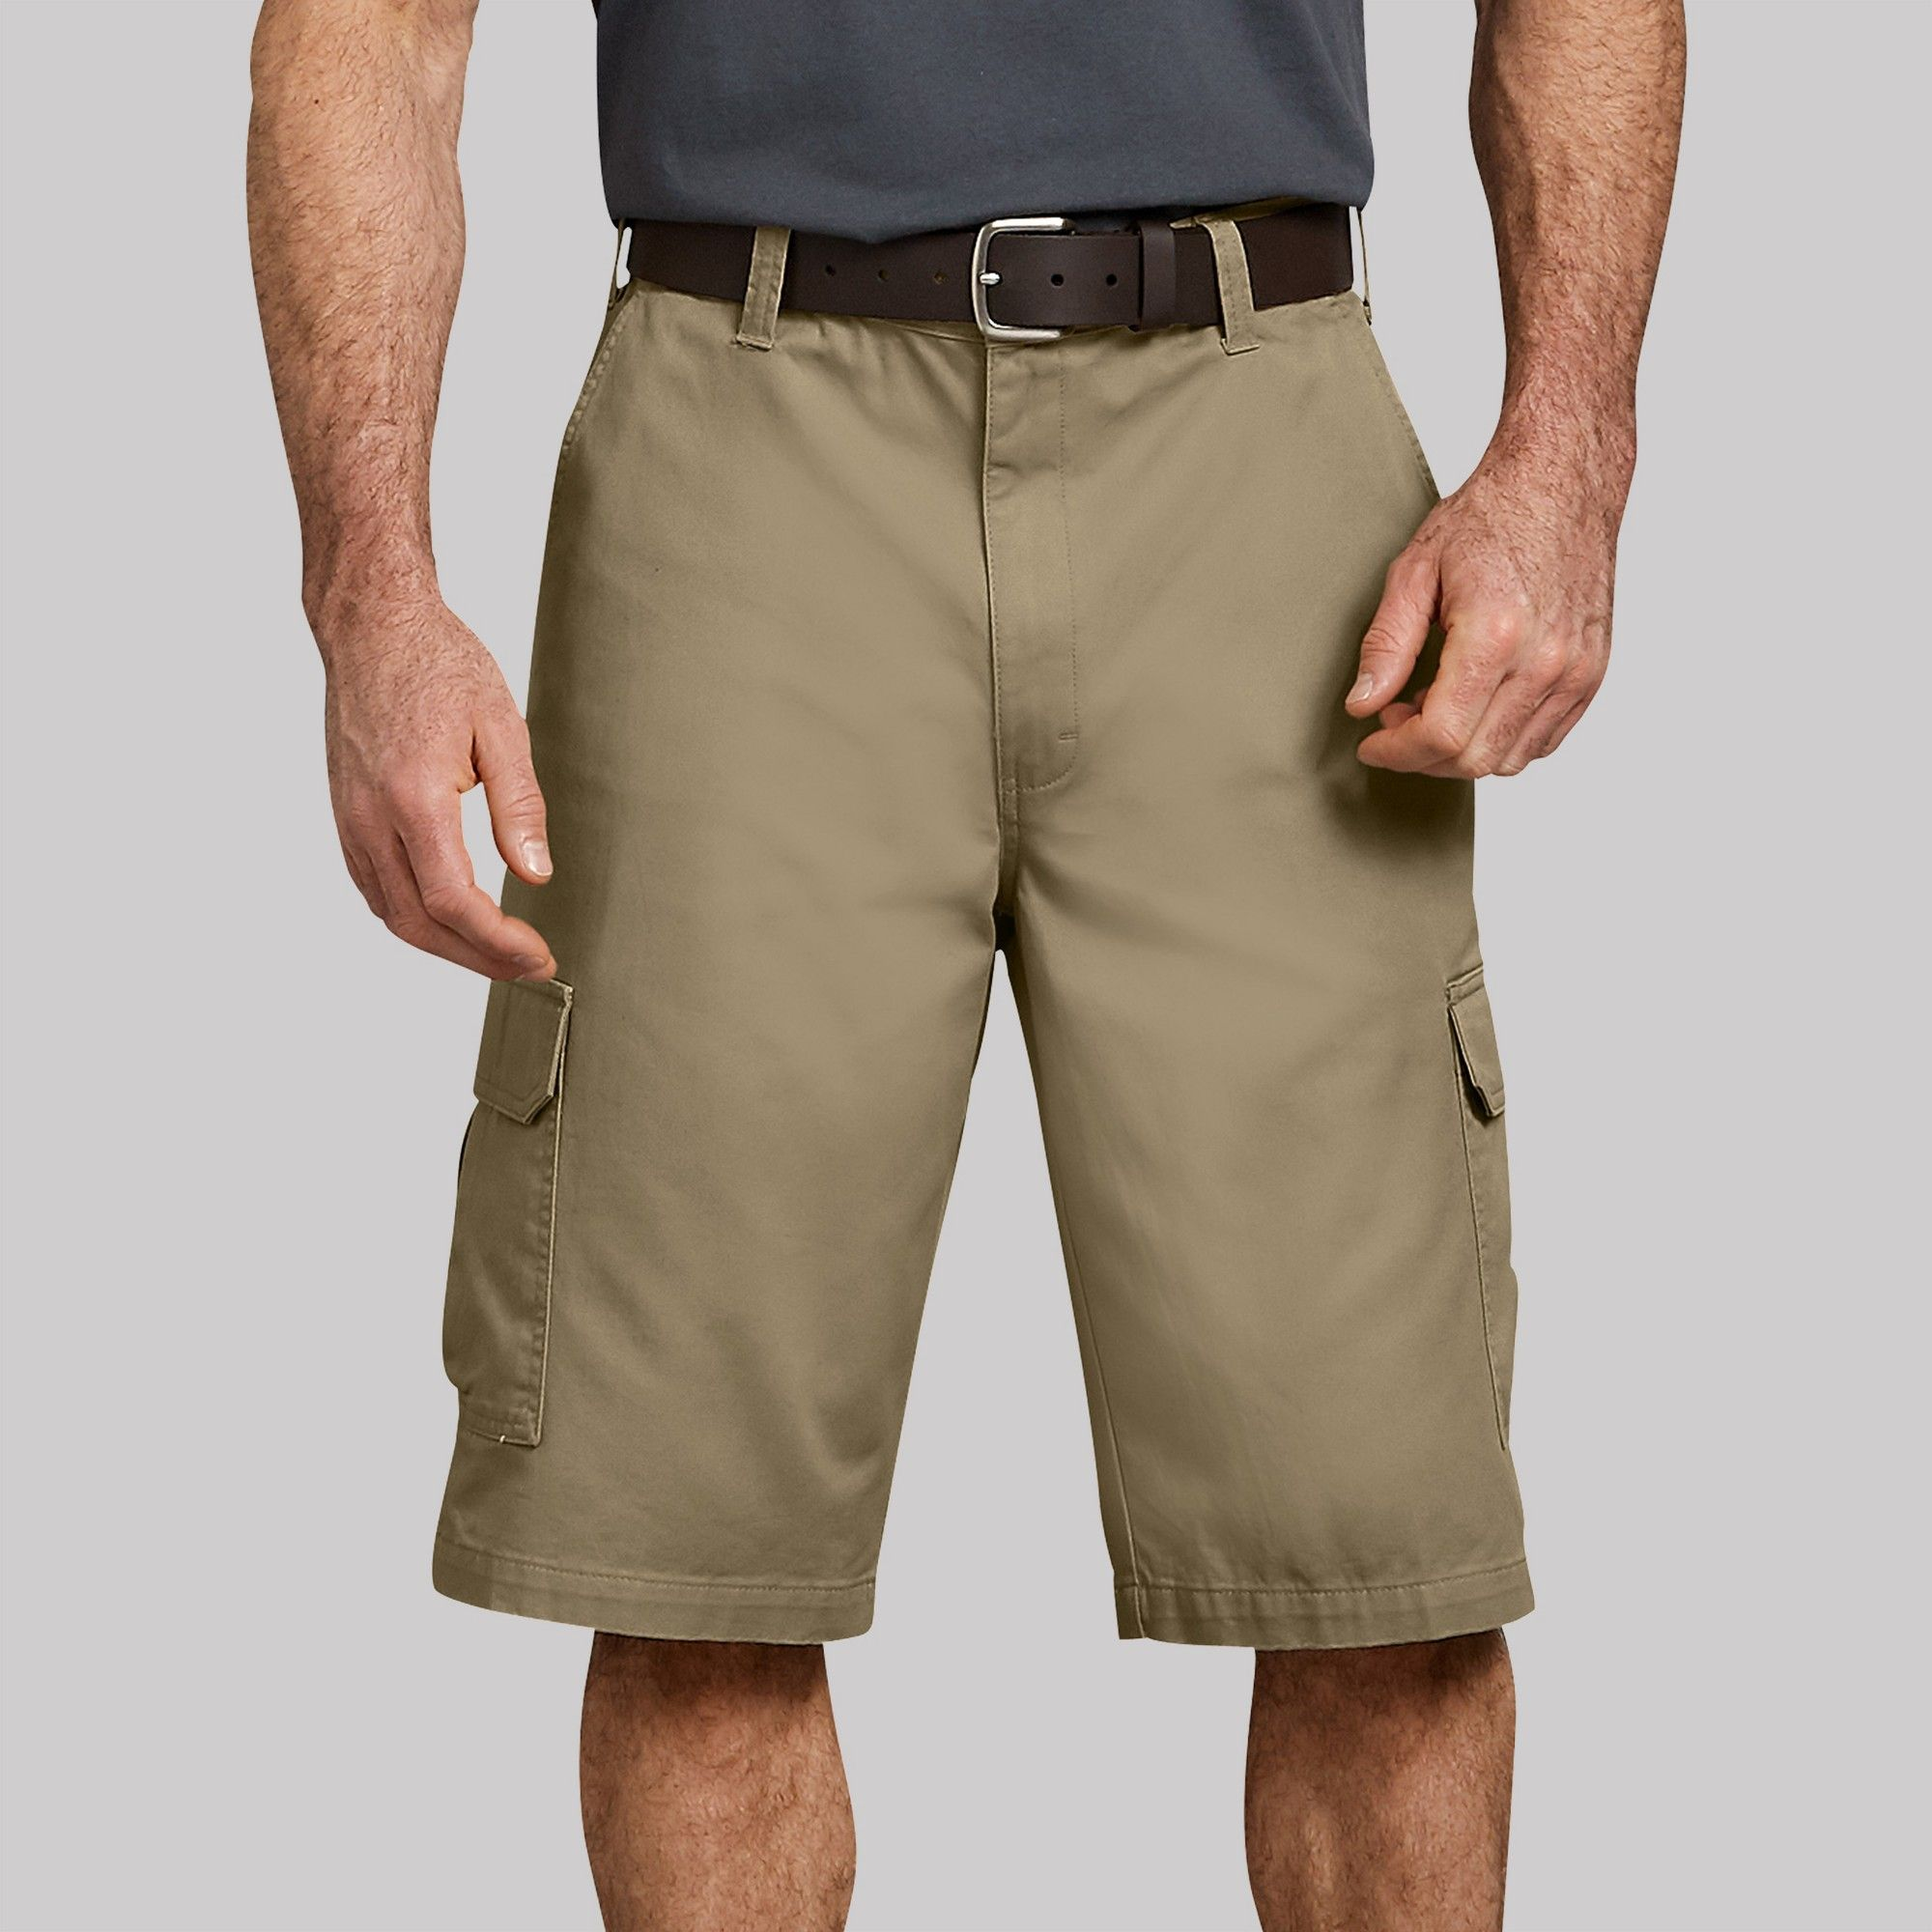 42d0a2771e Dickies Men's Big & Tall 16 Loose Fit Cargo Shorts - Khaki Heather ...